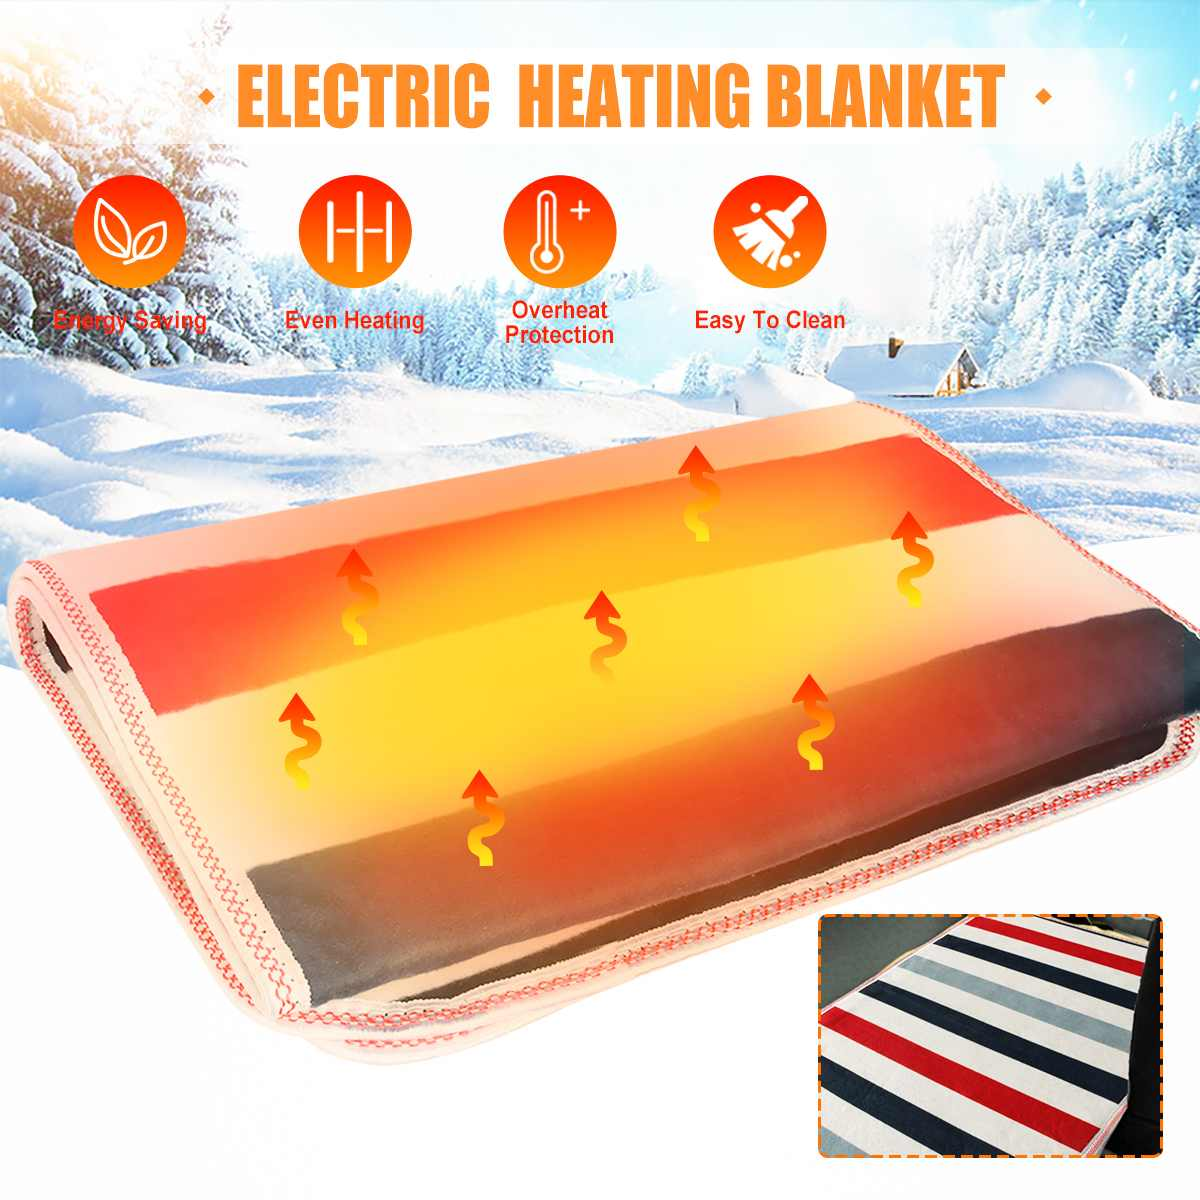 12V/24V Home Electric Heating Blanket Thermostat Throw Single Body Warmer Bed Mattress Winter Electric Heated Carpets Mat Pads